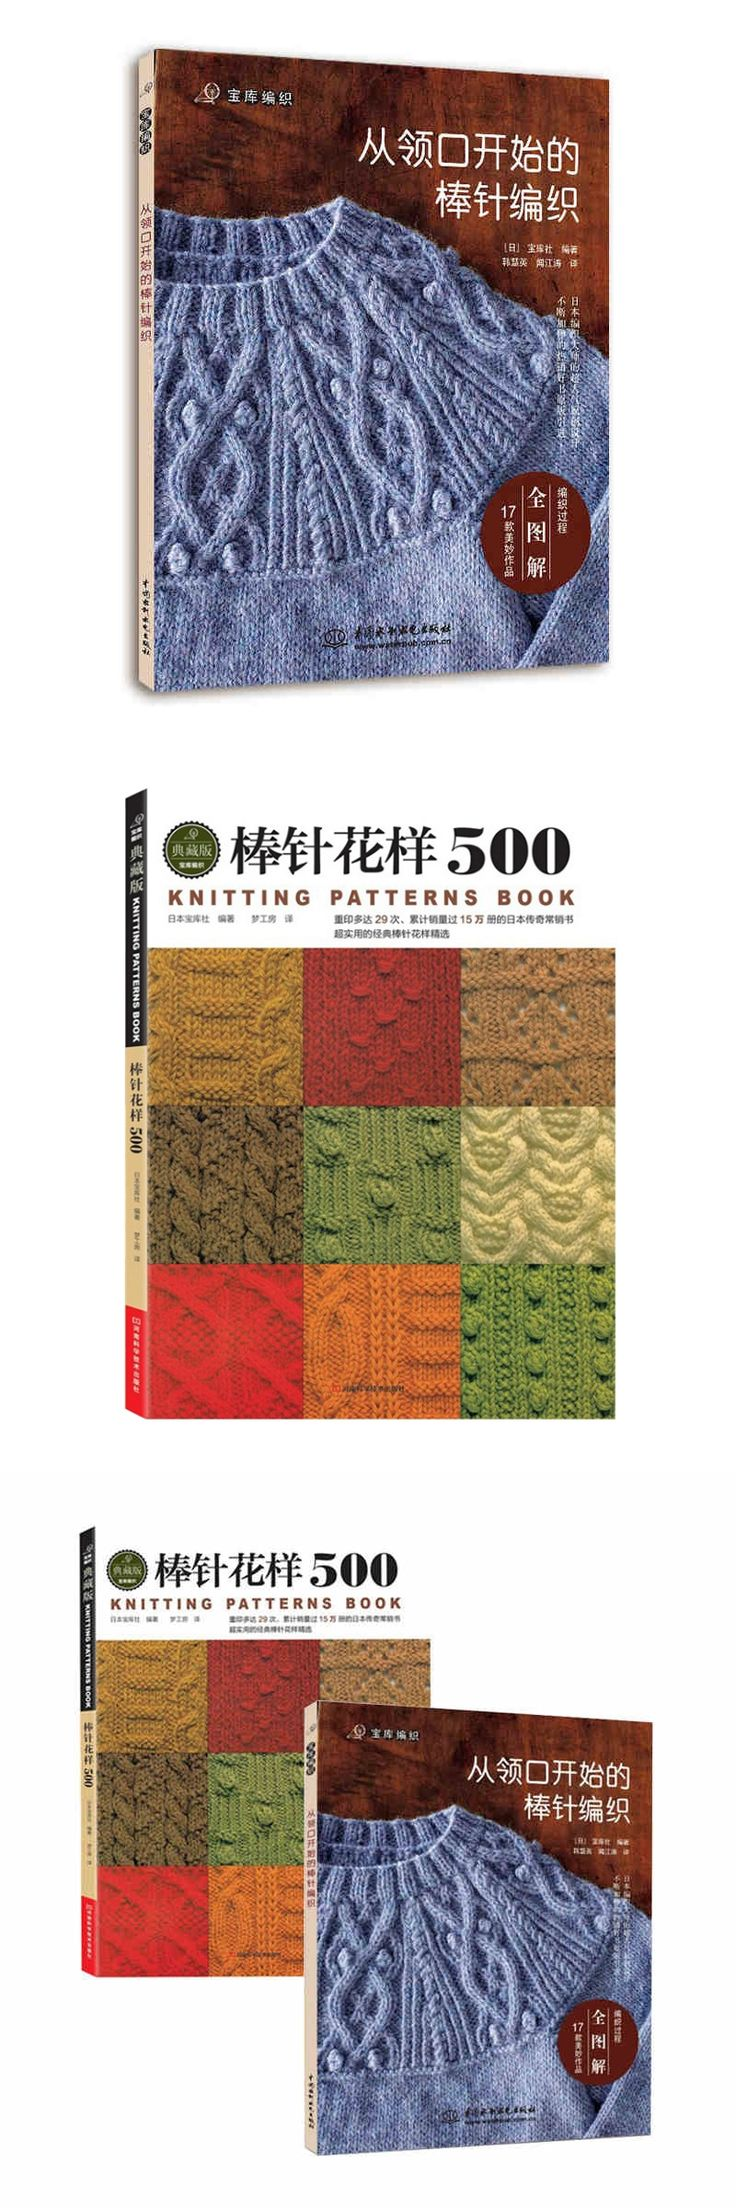 33d0058adc98f 2pcs Chinese Knitting needle book with 500 different pattern knitting book    Chinese Needle knitting from